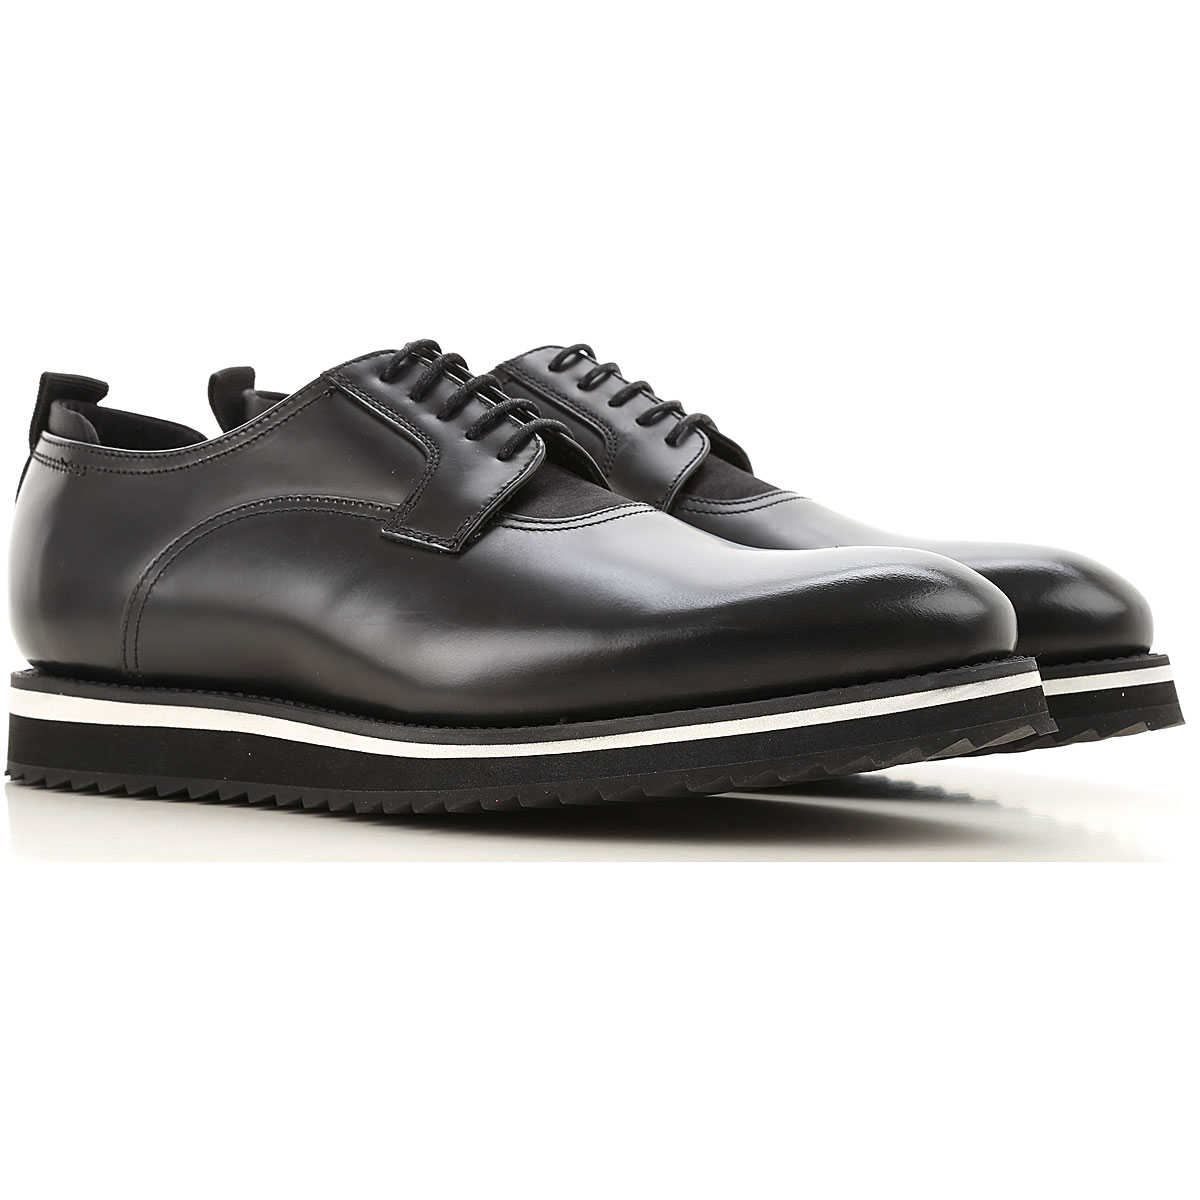 Karl Lagerfeld Lace Up Shoes for Men Oxfords Derbies and Brogues SE - GOOFASH